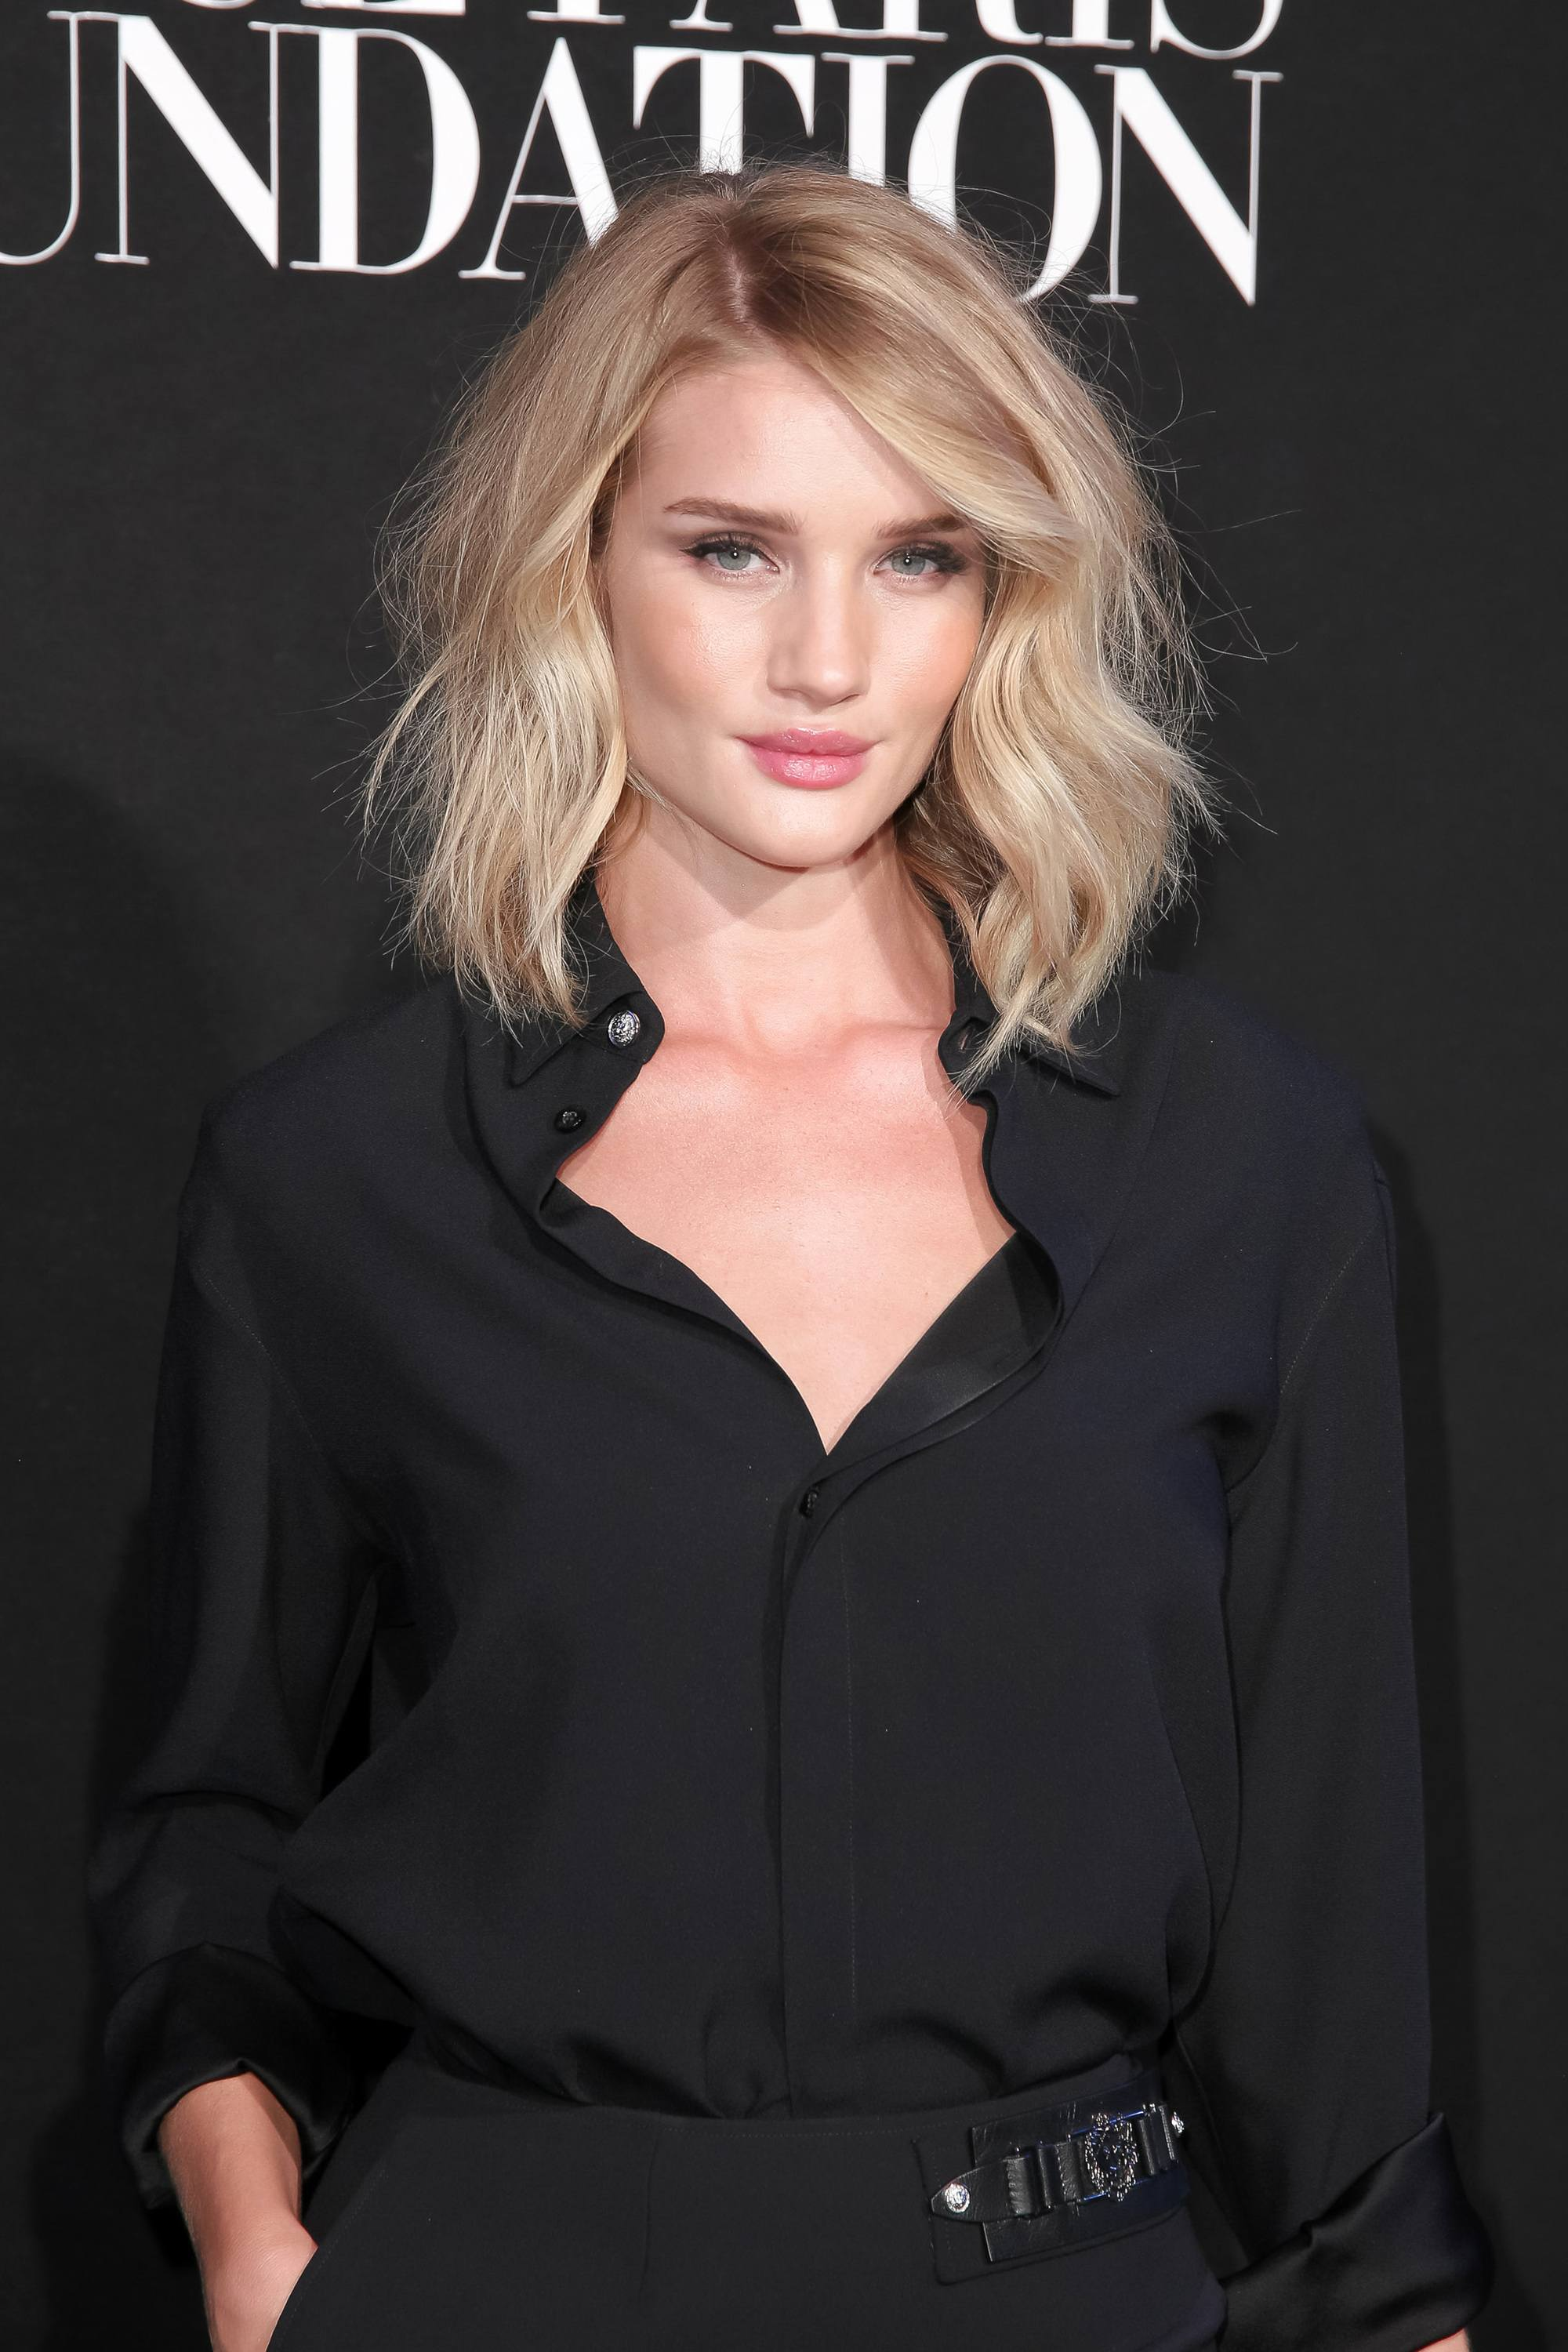 Choppy hair - RHW - Wavy blonde lob with side part